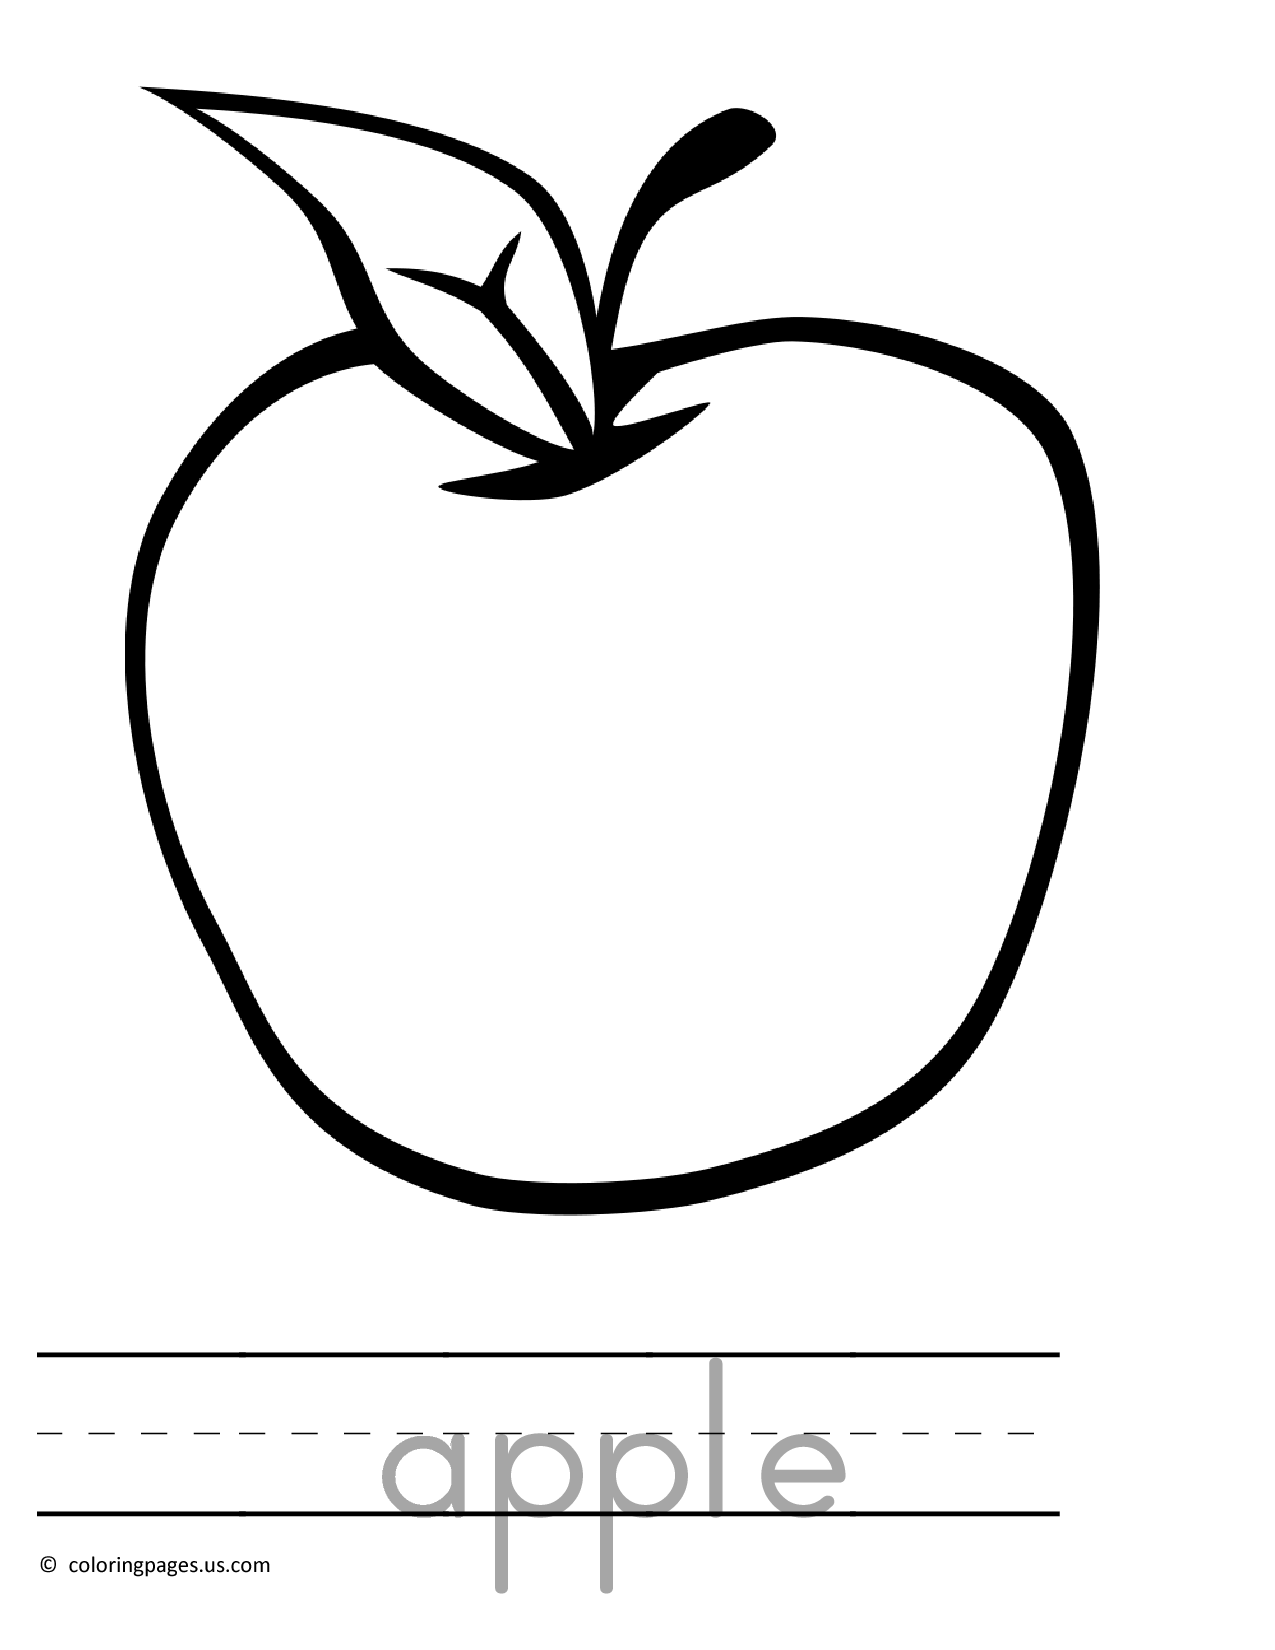 coloring image of an apple free printable apple coloring pages for kids image of an apple coloring